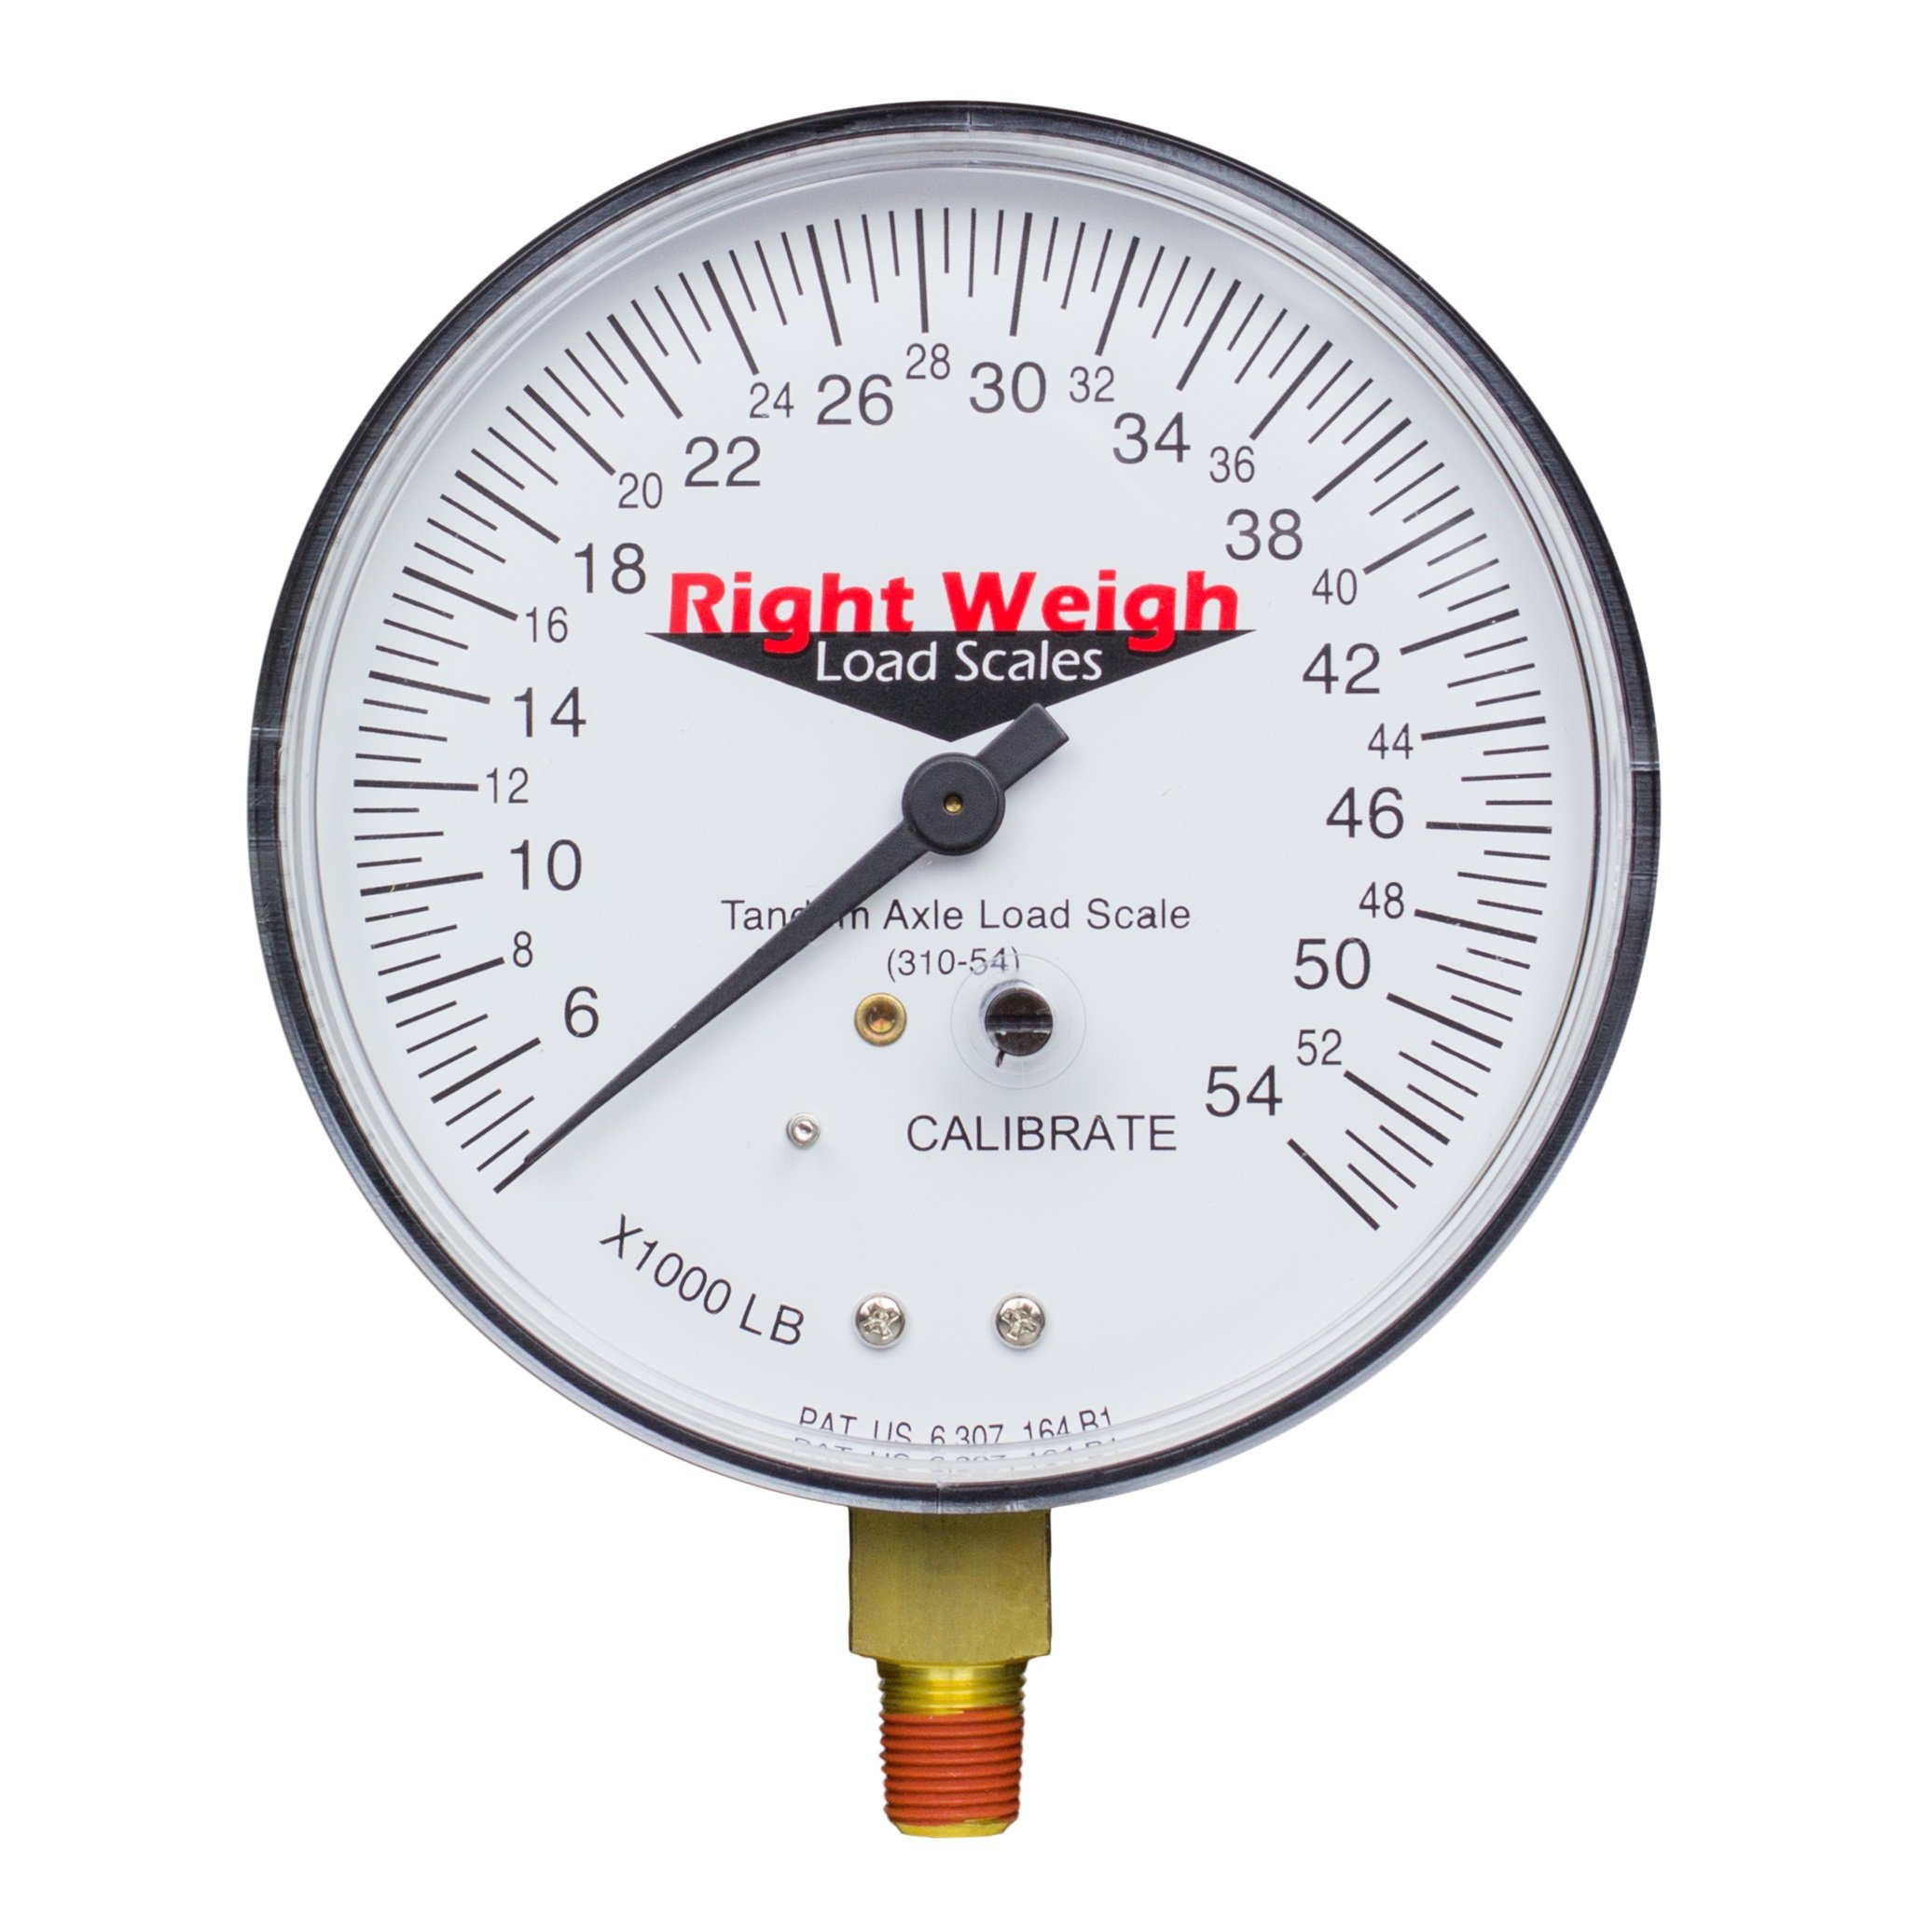 Right Weigh Replacement Gauge 310-54-GO (Gauge Only) Tandem-Axle Exterior Analog Axle Load Scale - for Single Height Control Valve Air Suspensions